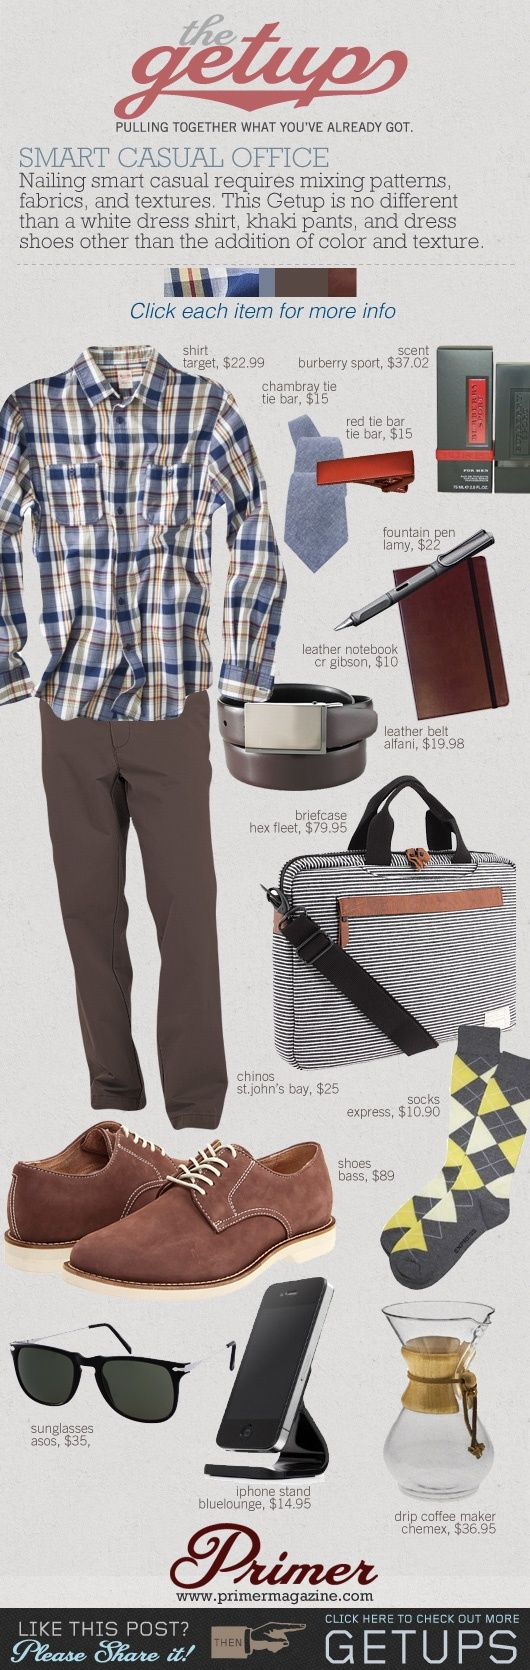 The Getup: Smart Casual Office | Primer